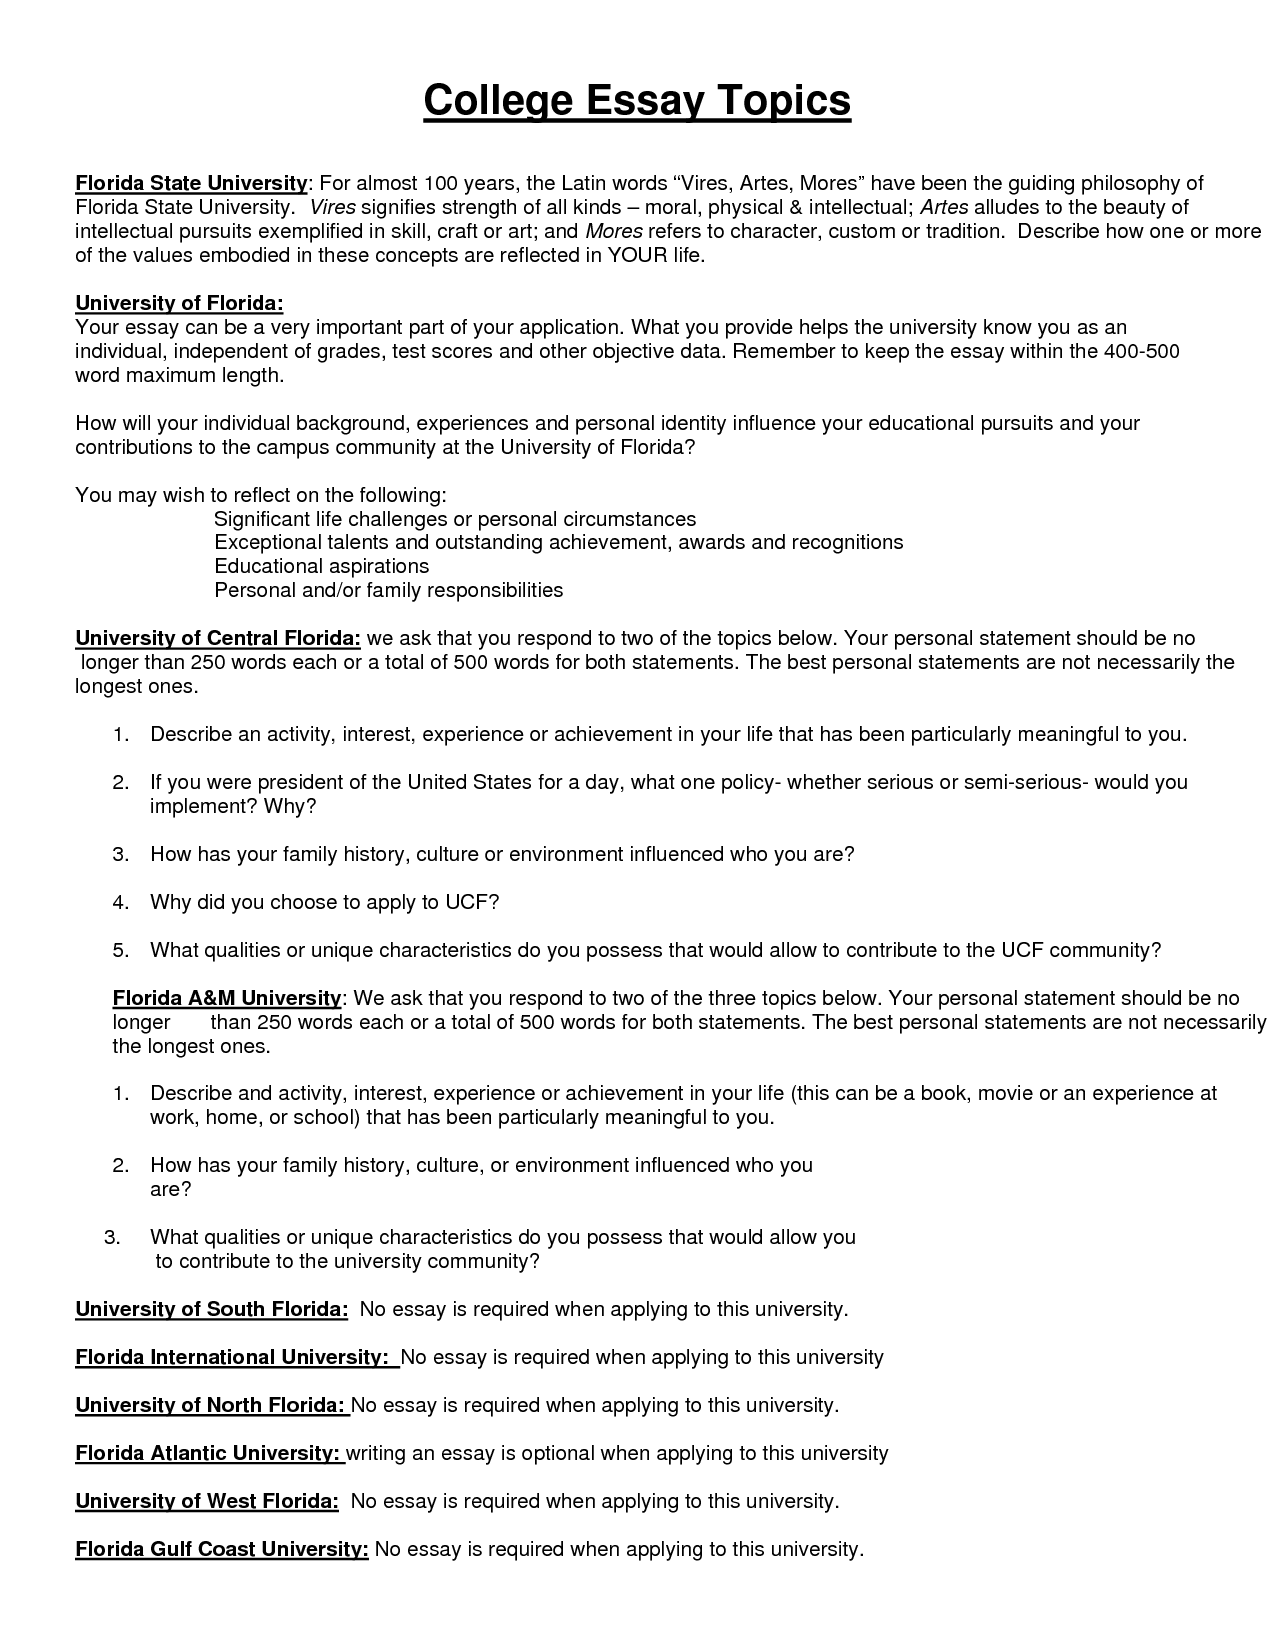 005 Essay Example College Topics Common App Free Topic Resume Examples Templates How To Write Good Shocking Prompts 2018 Full